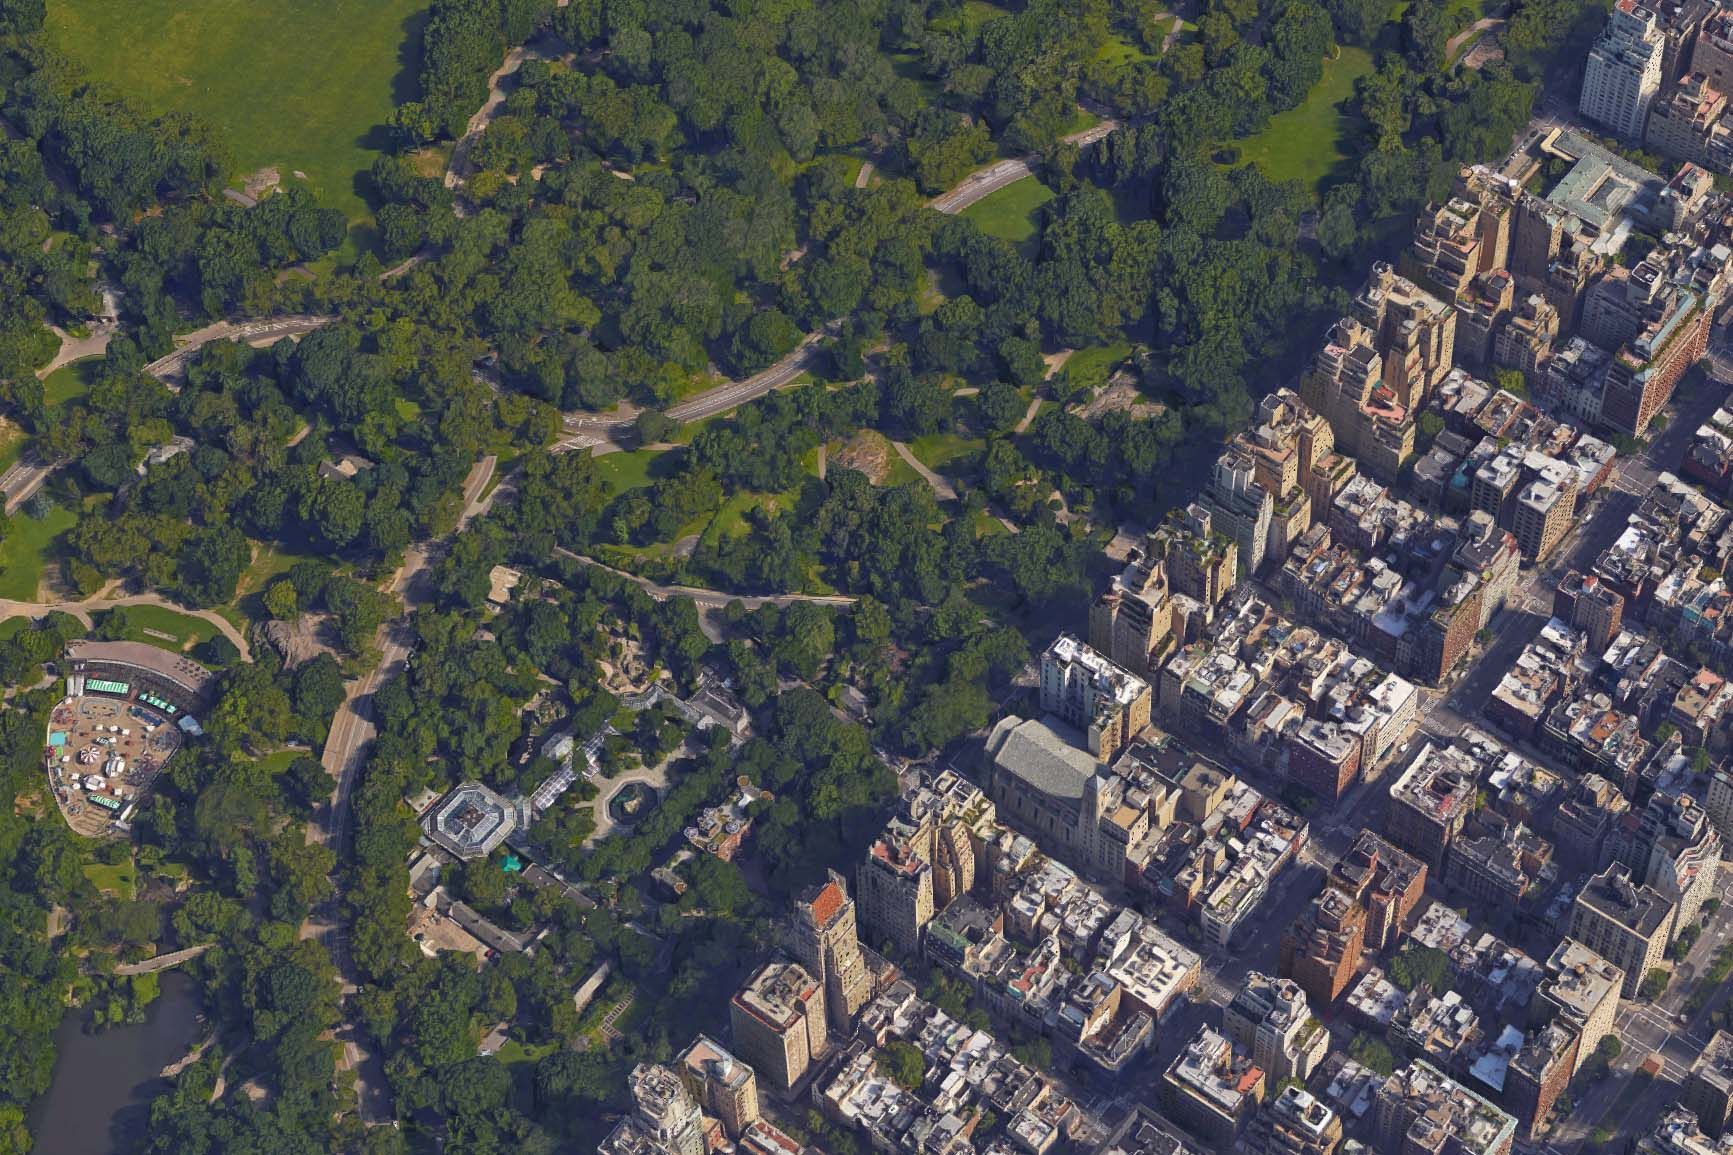 Aerial photo of Central Park